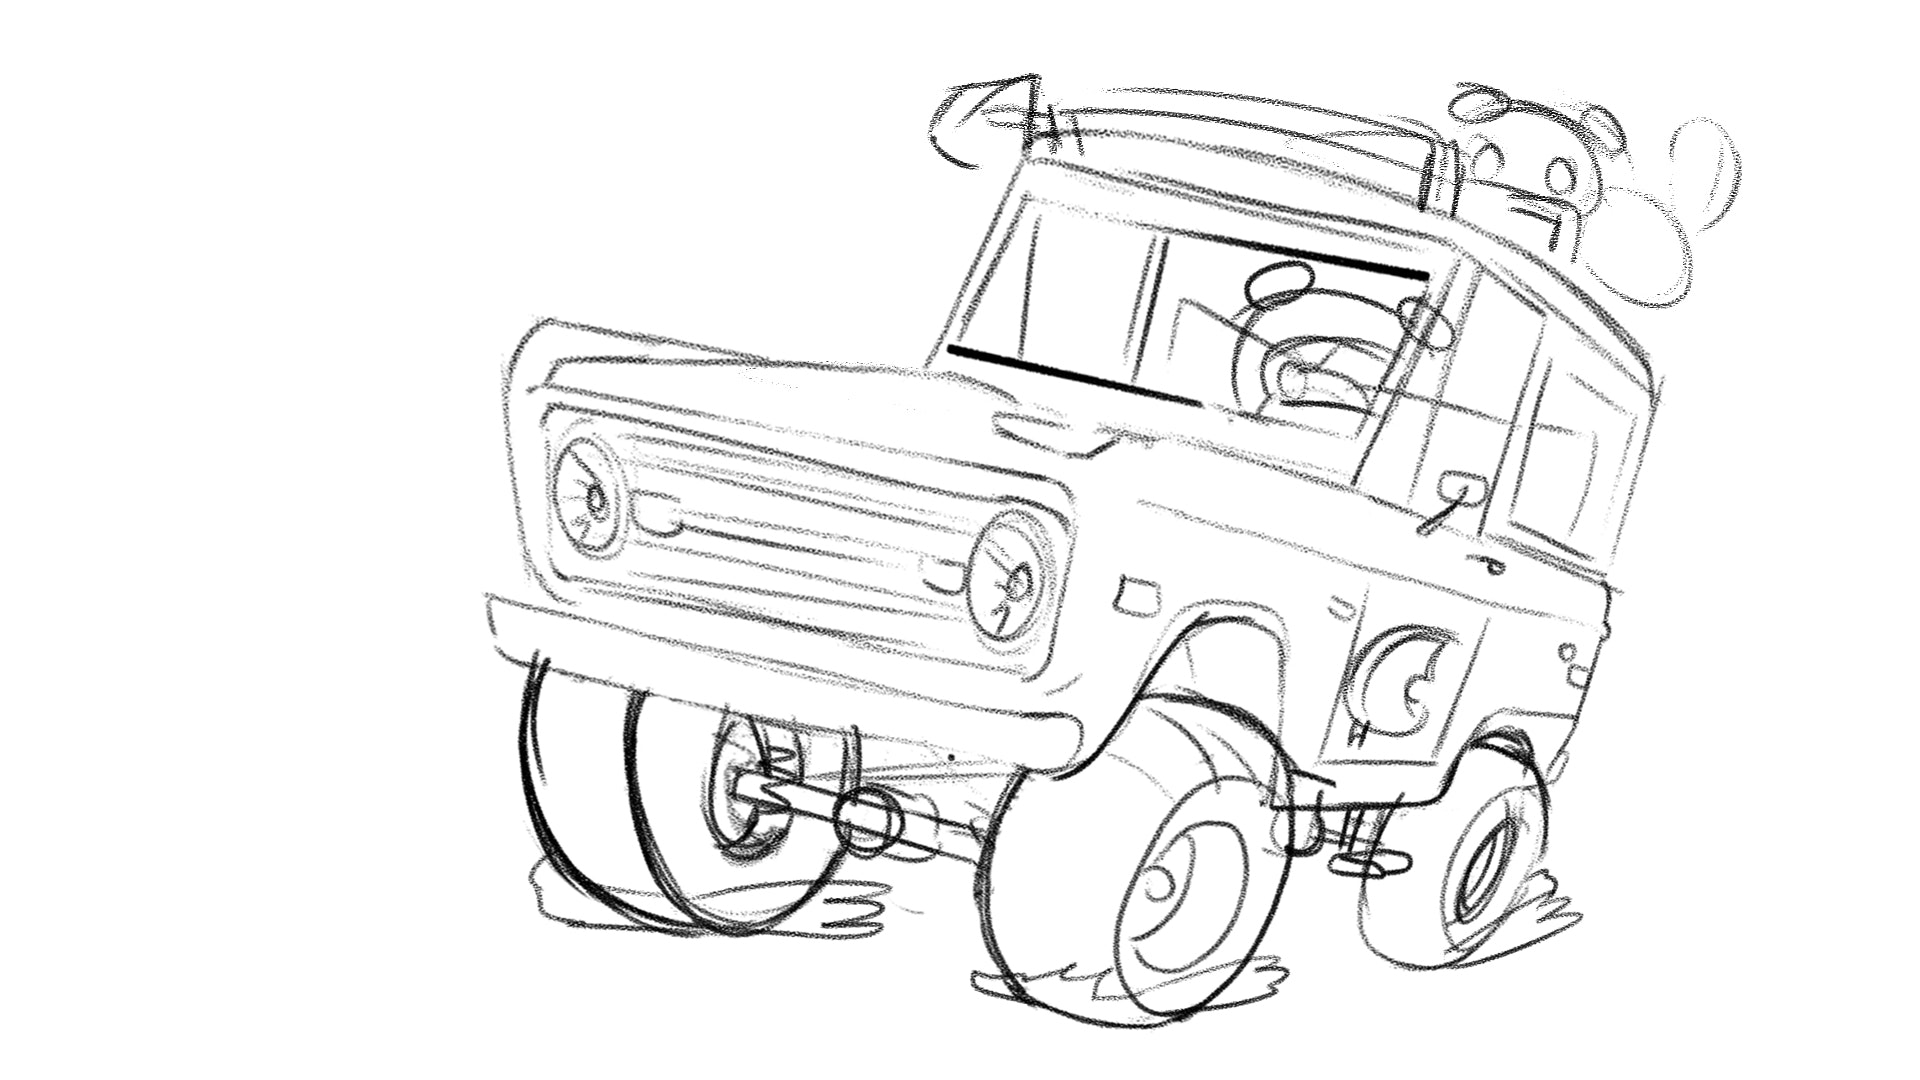 BloodBros. Illustration - 2 Bronco angle sketch